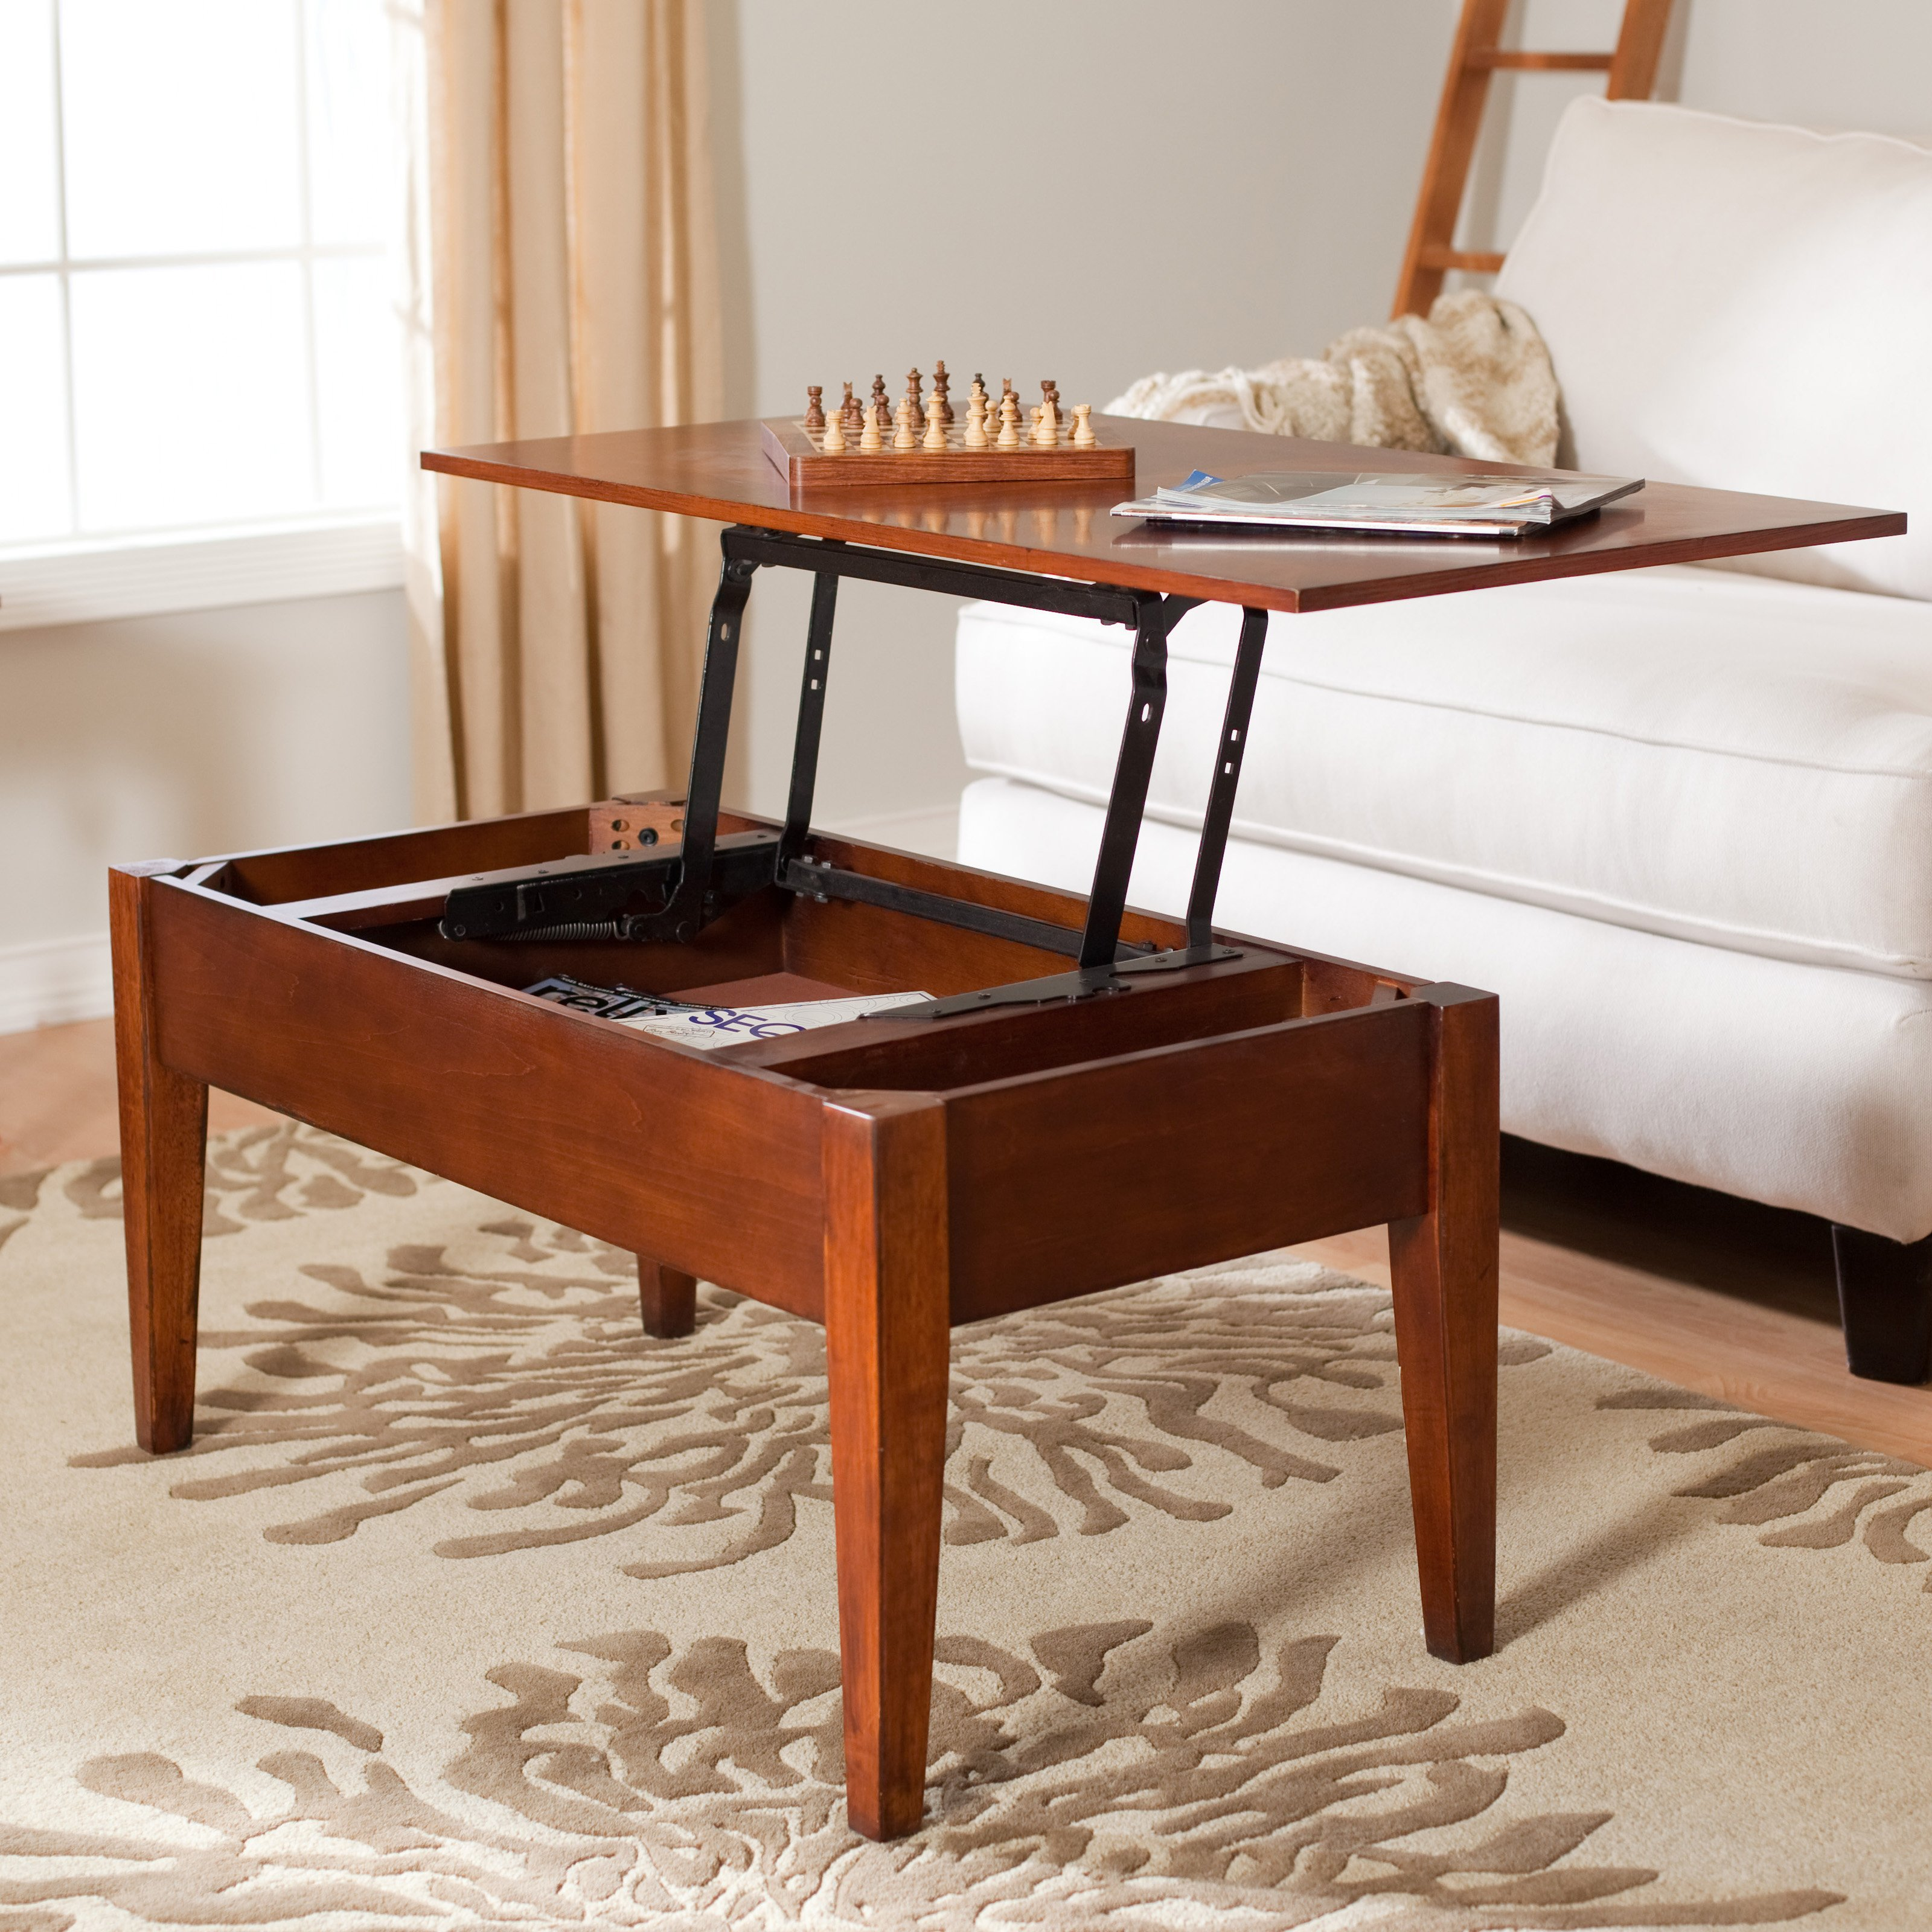 Fold Out Coffee Table With Lift Top